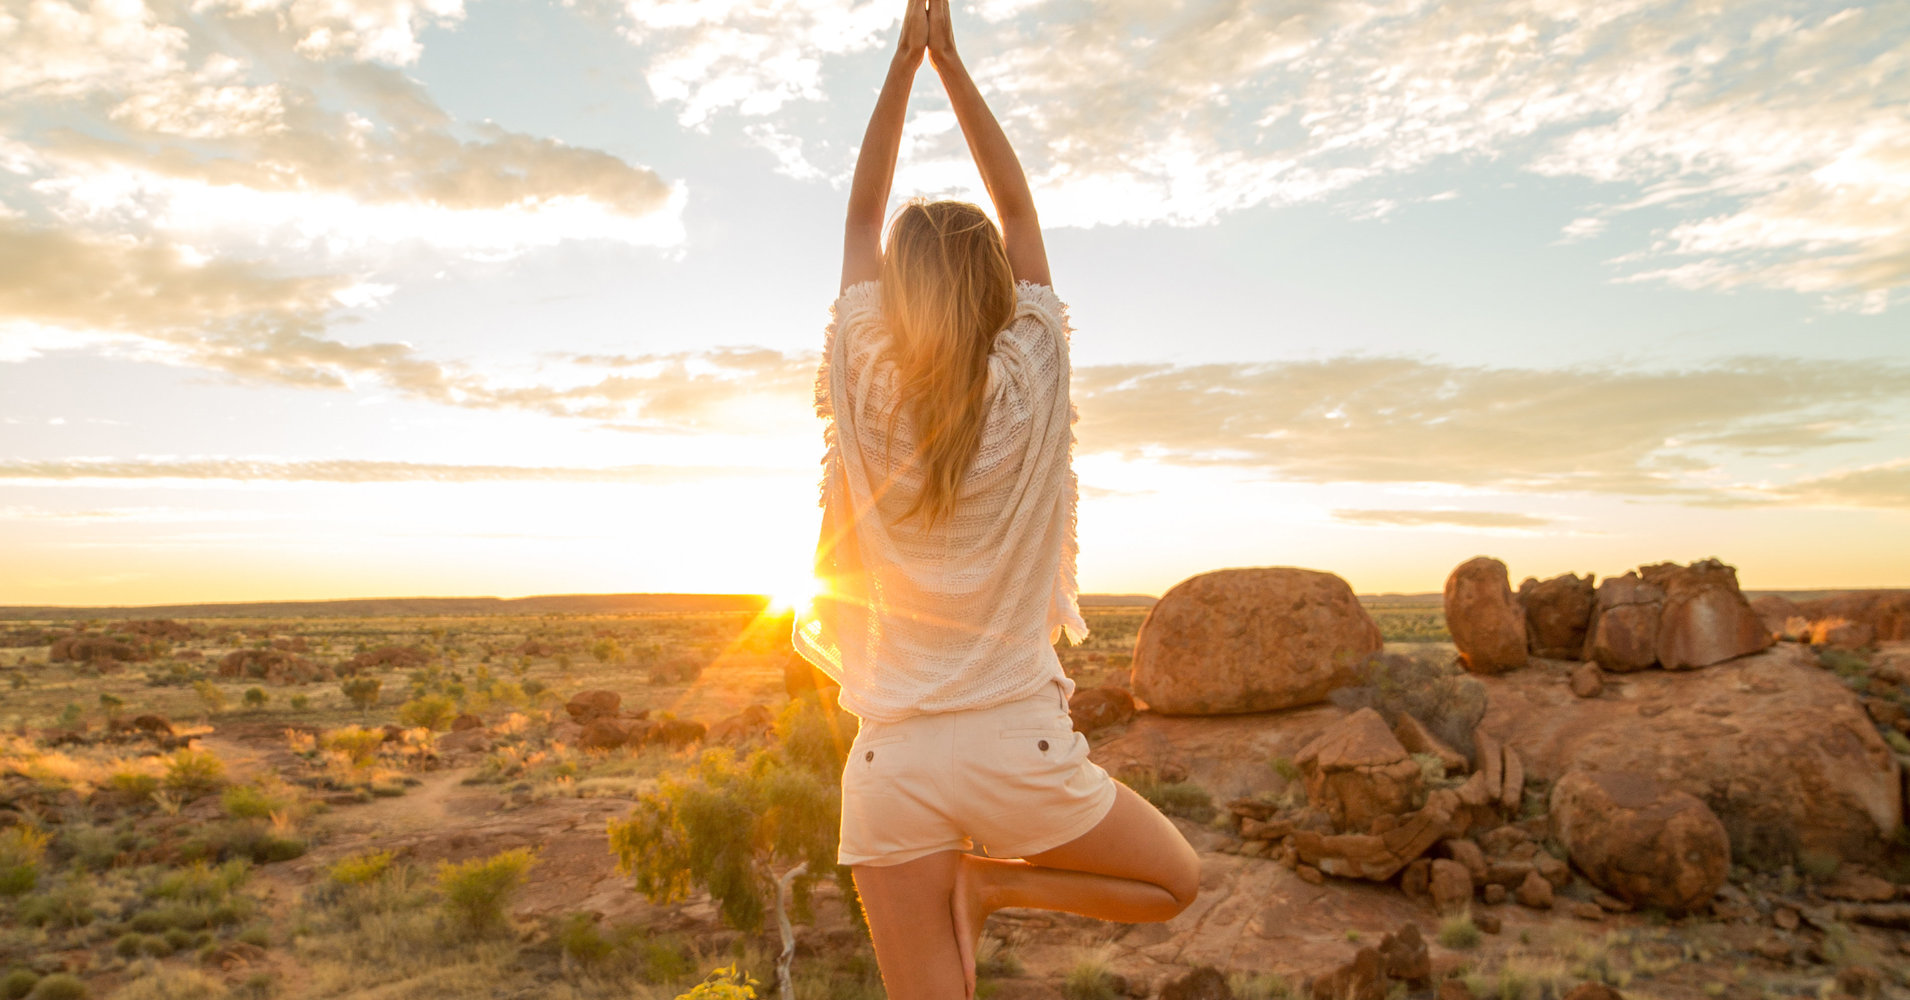 What are the yoga poses that are best for stress relief? 3